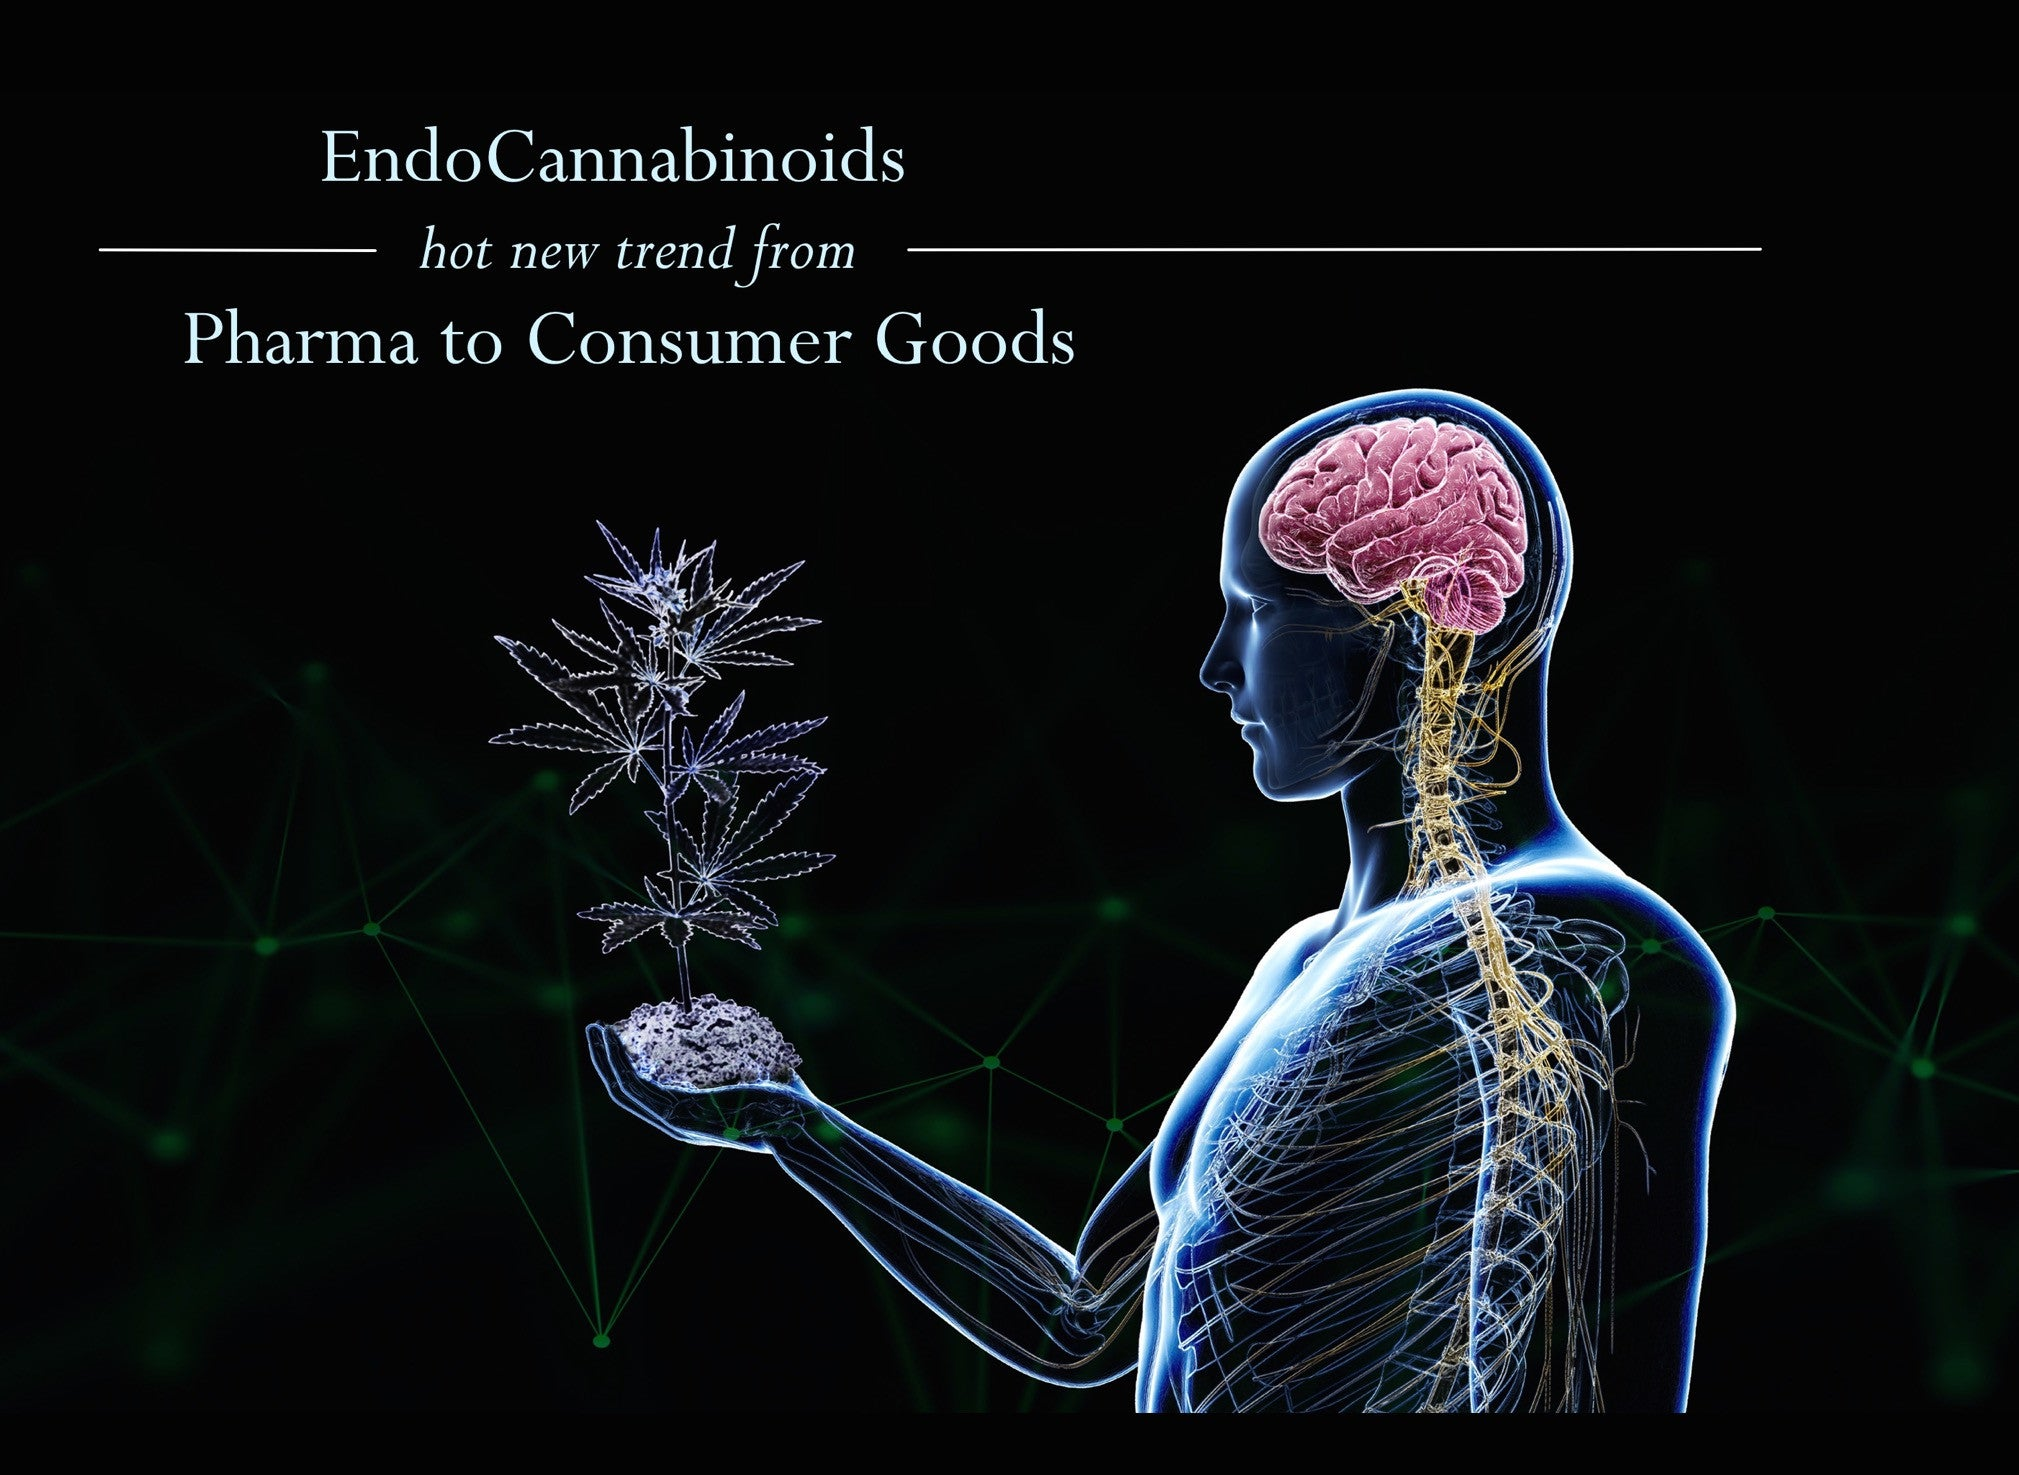 Endocannabinoids cannabinoids hot new trend from Pharma to consumer goods